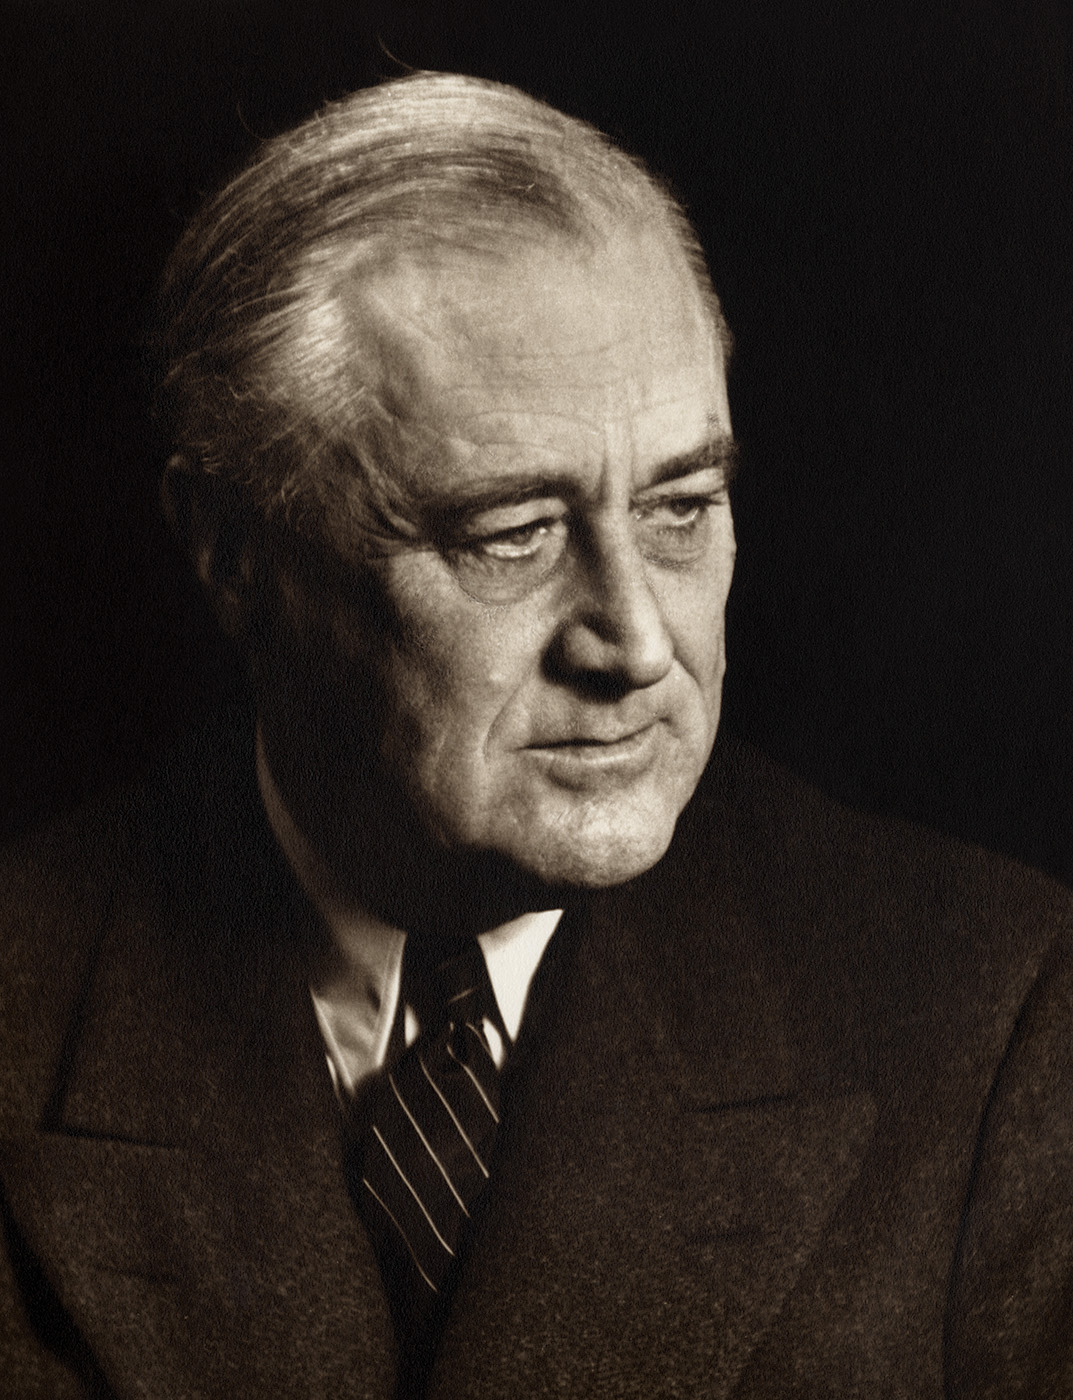 President Franklin Delano Roosevelt, Washington, 1939